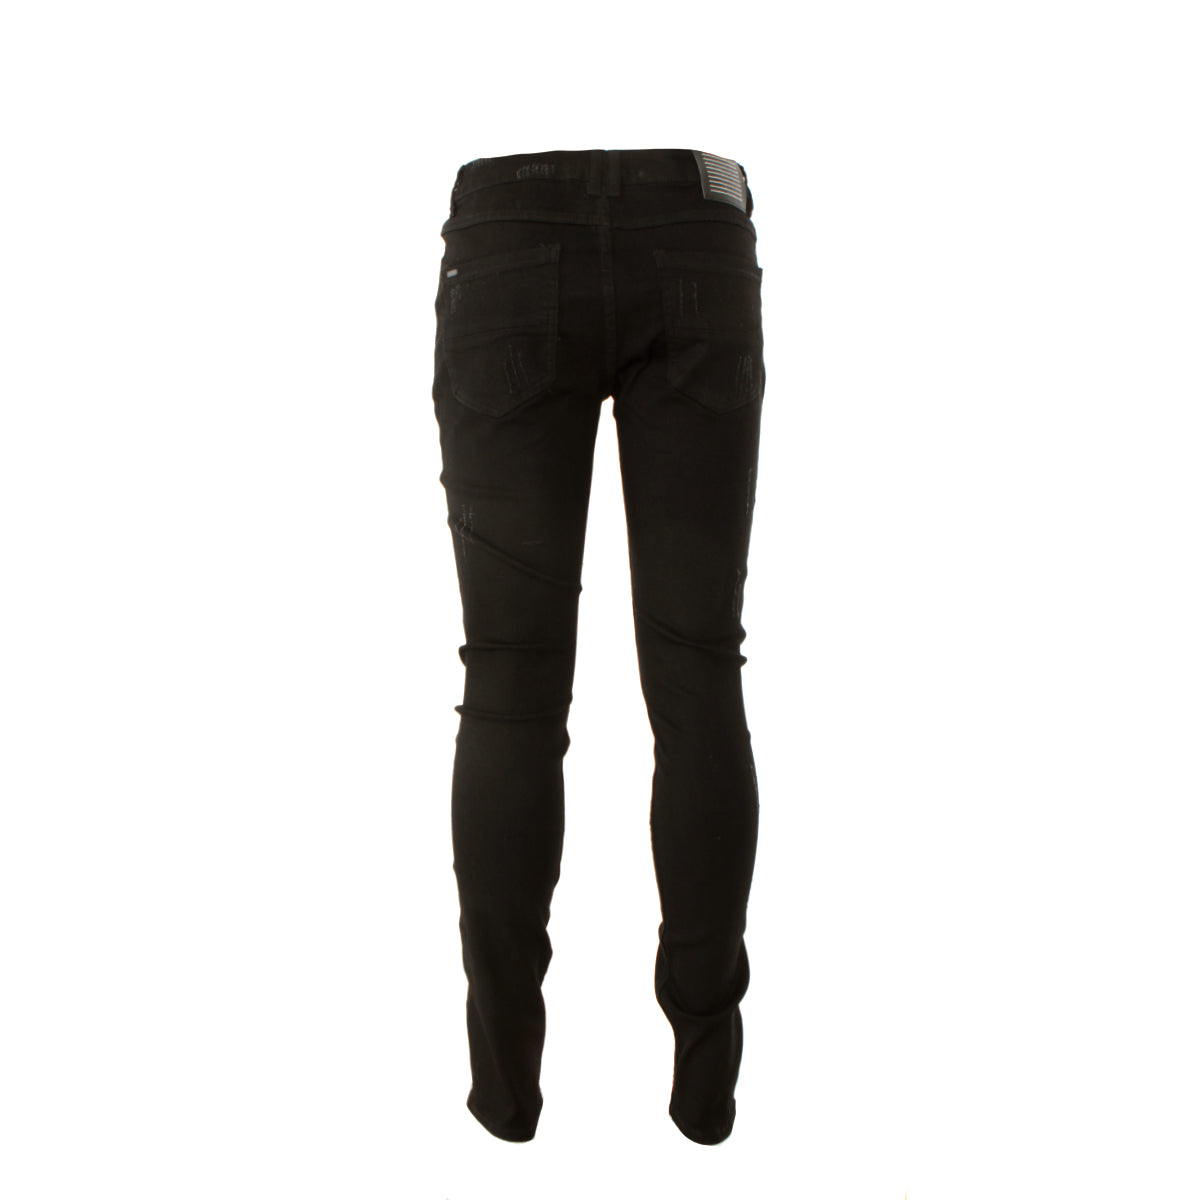 Serenede Midnight Black Men's Skinny Jeans